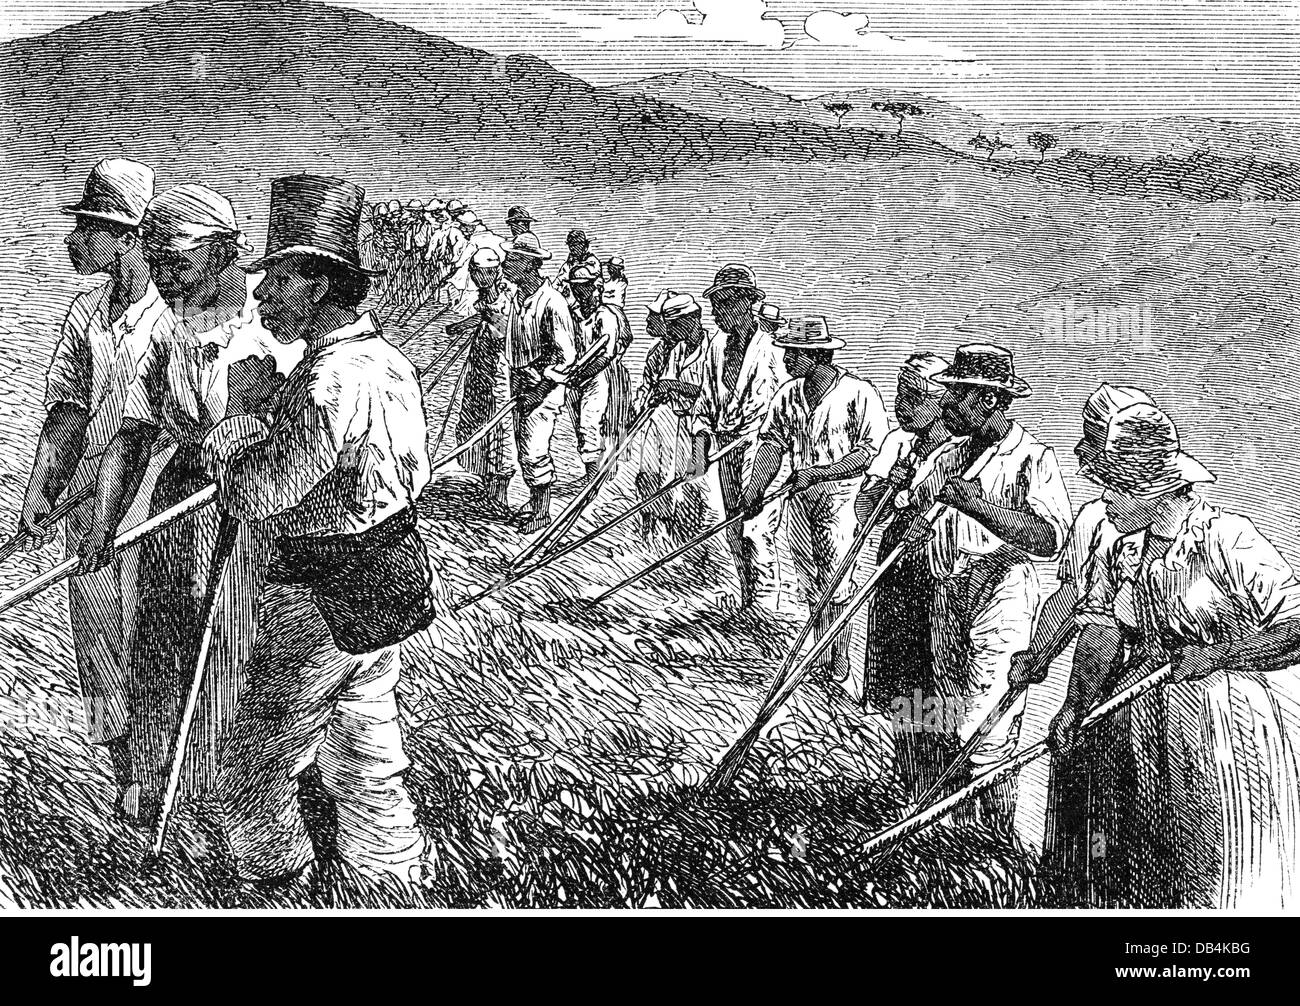 Whalers in action wood engraving published in 1855 stock illustration - Slavery Slaves At Work On A Field In Brazil Wood Engraving 2nd Half